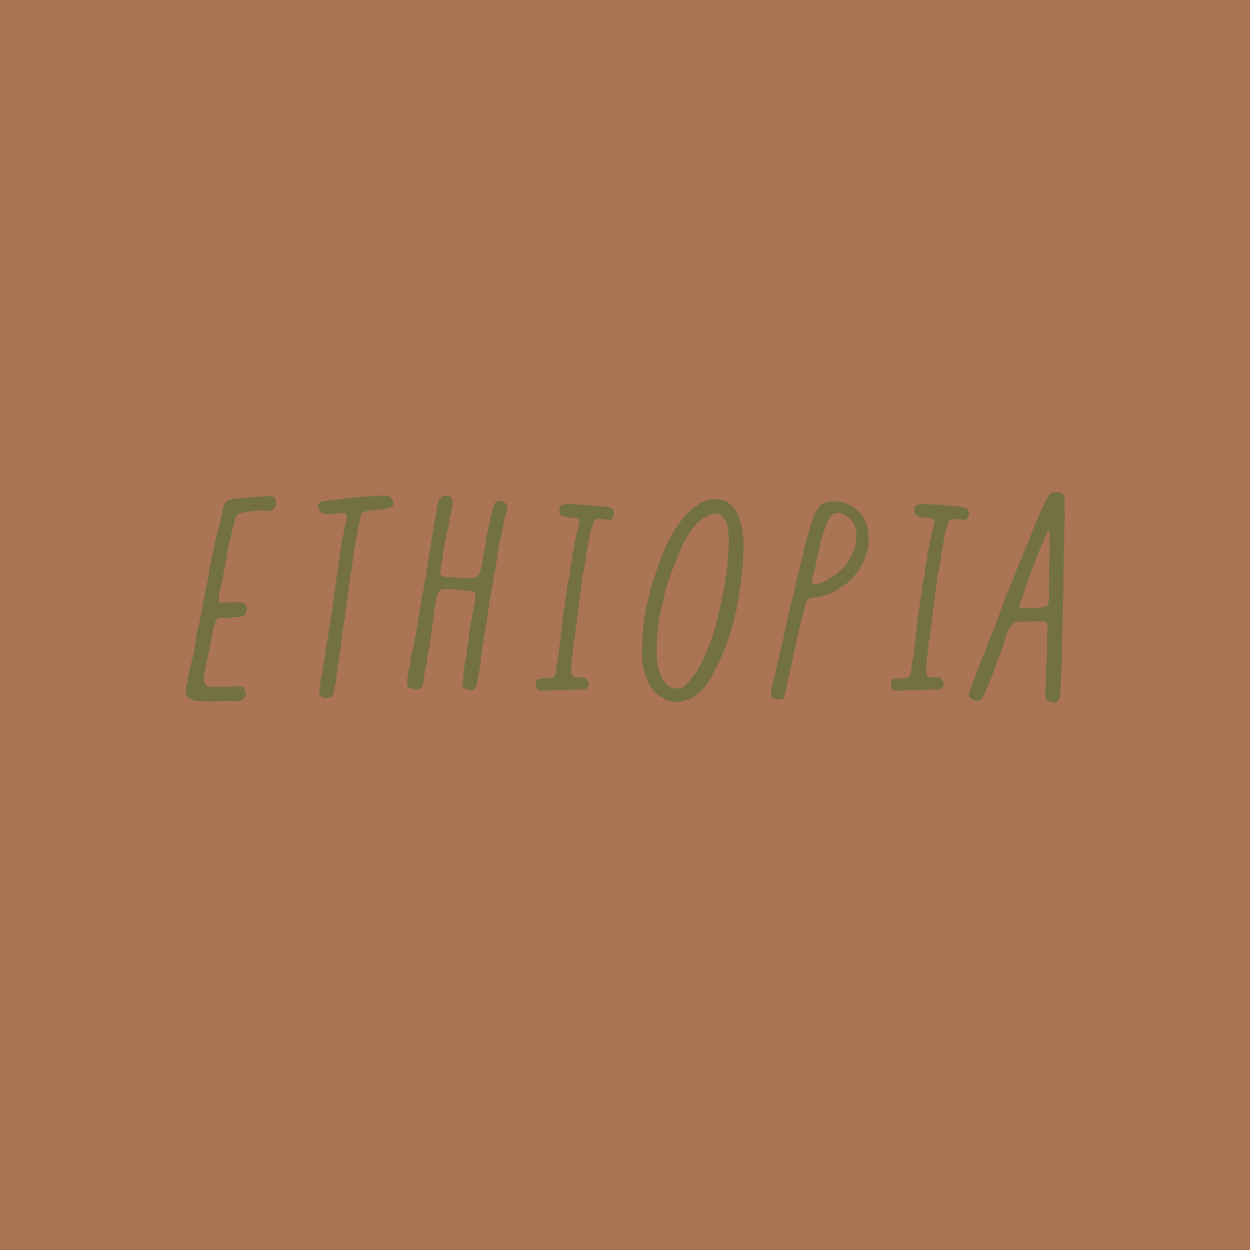 ethiopia_office.png